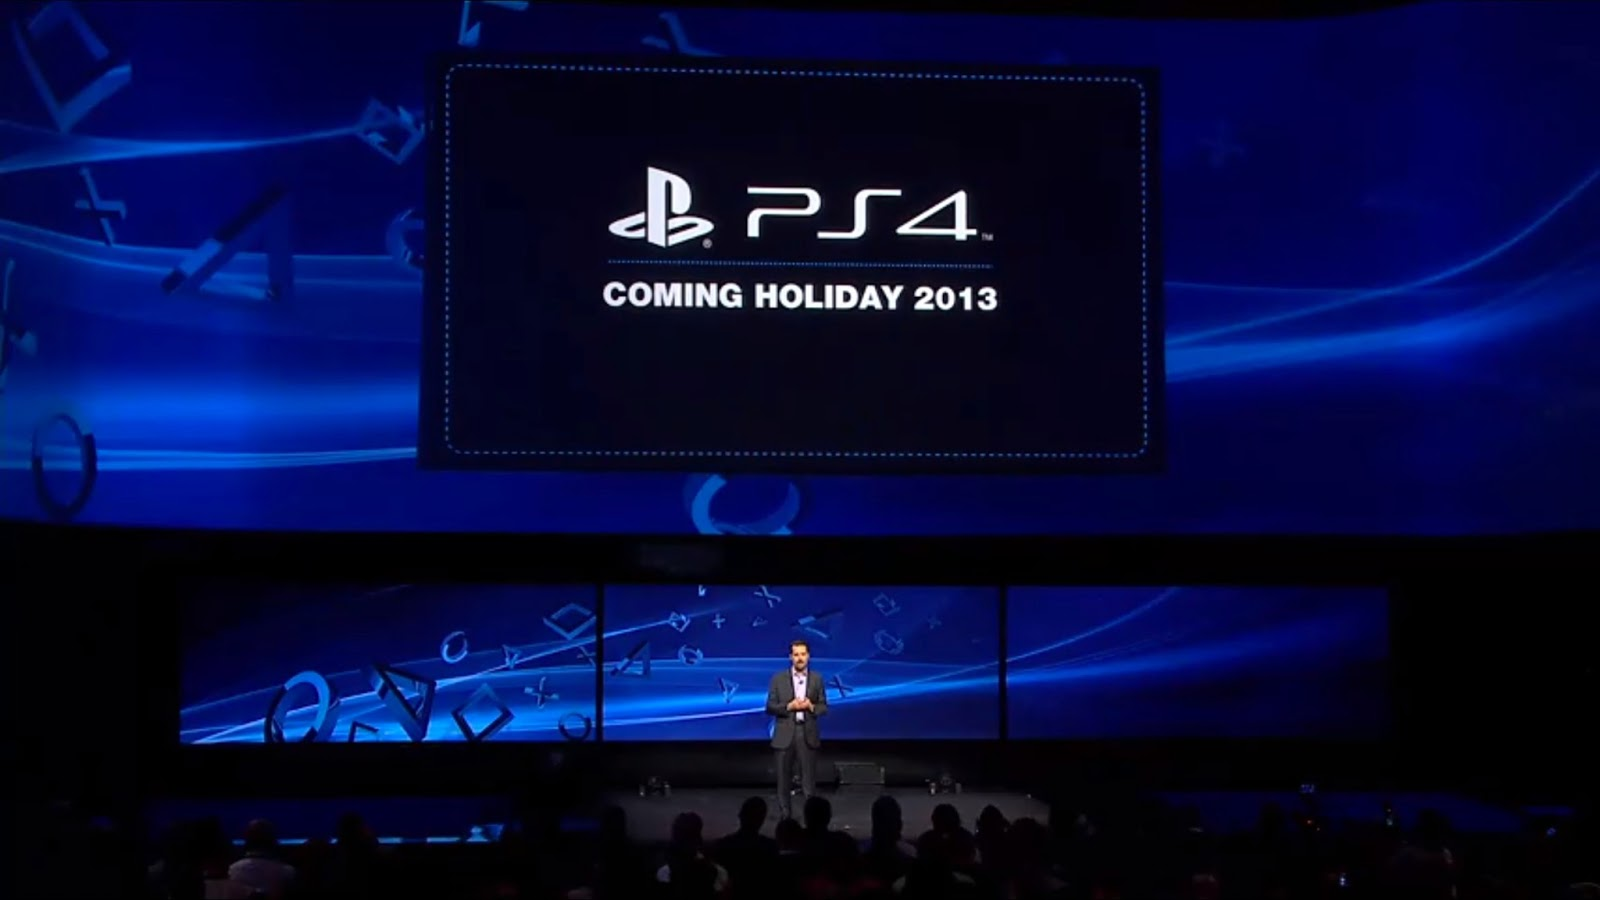 Ps4 release dates